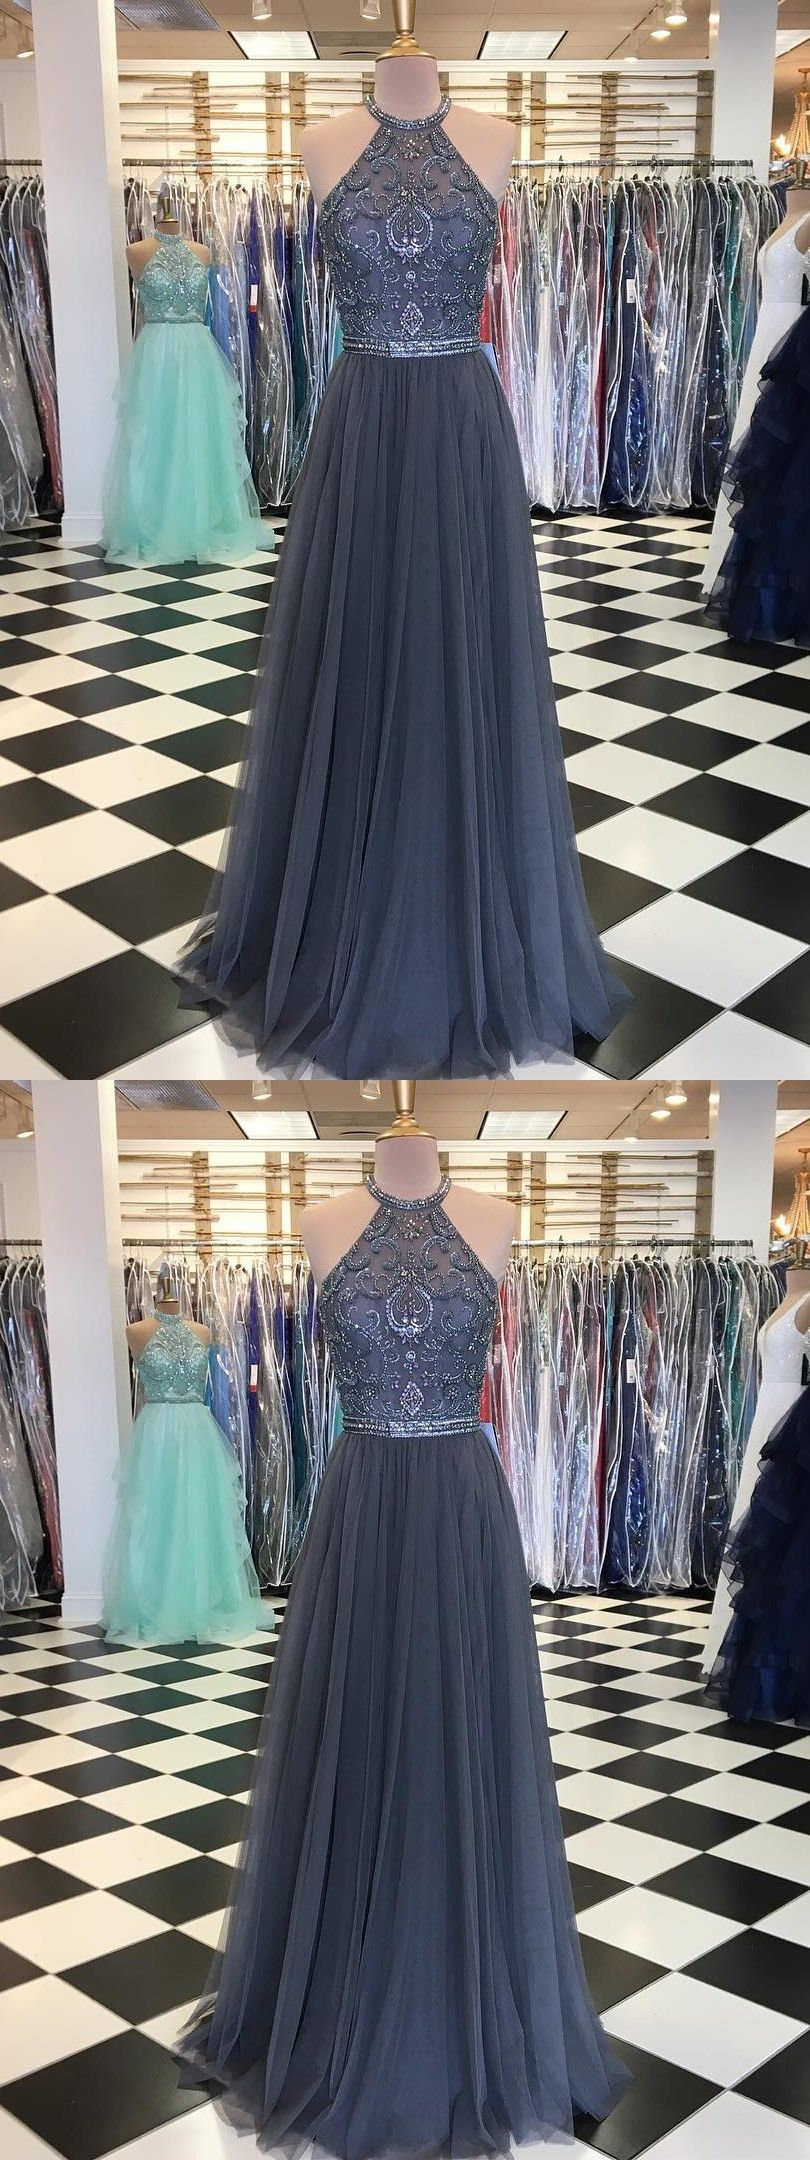 Chic prom dress silver beading aline long prom dresses evening